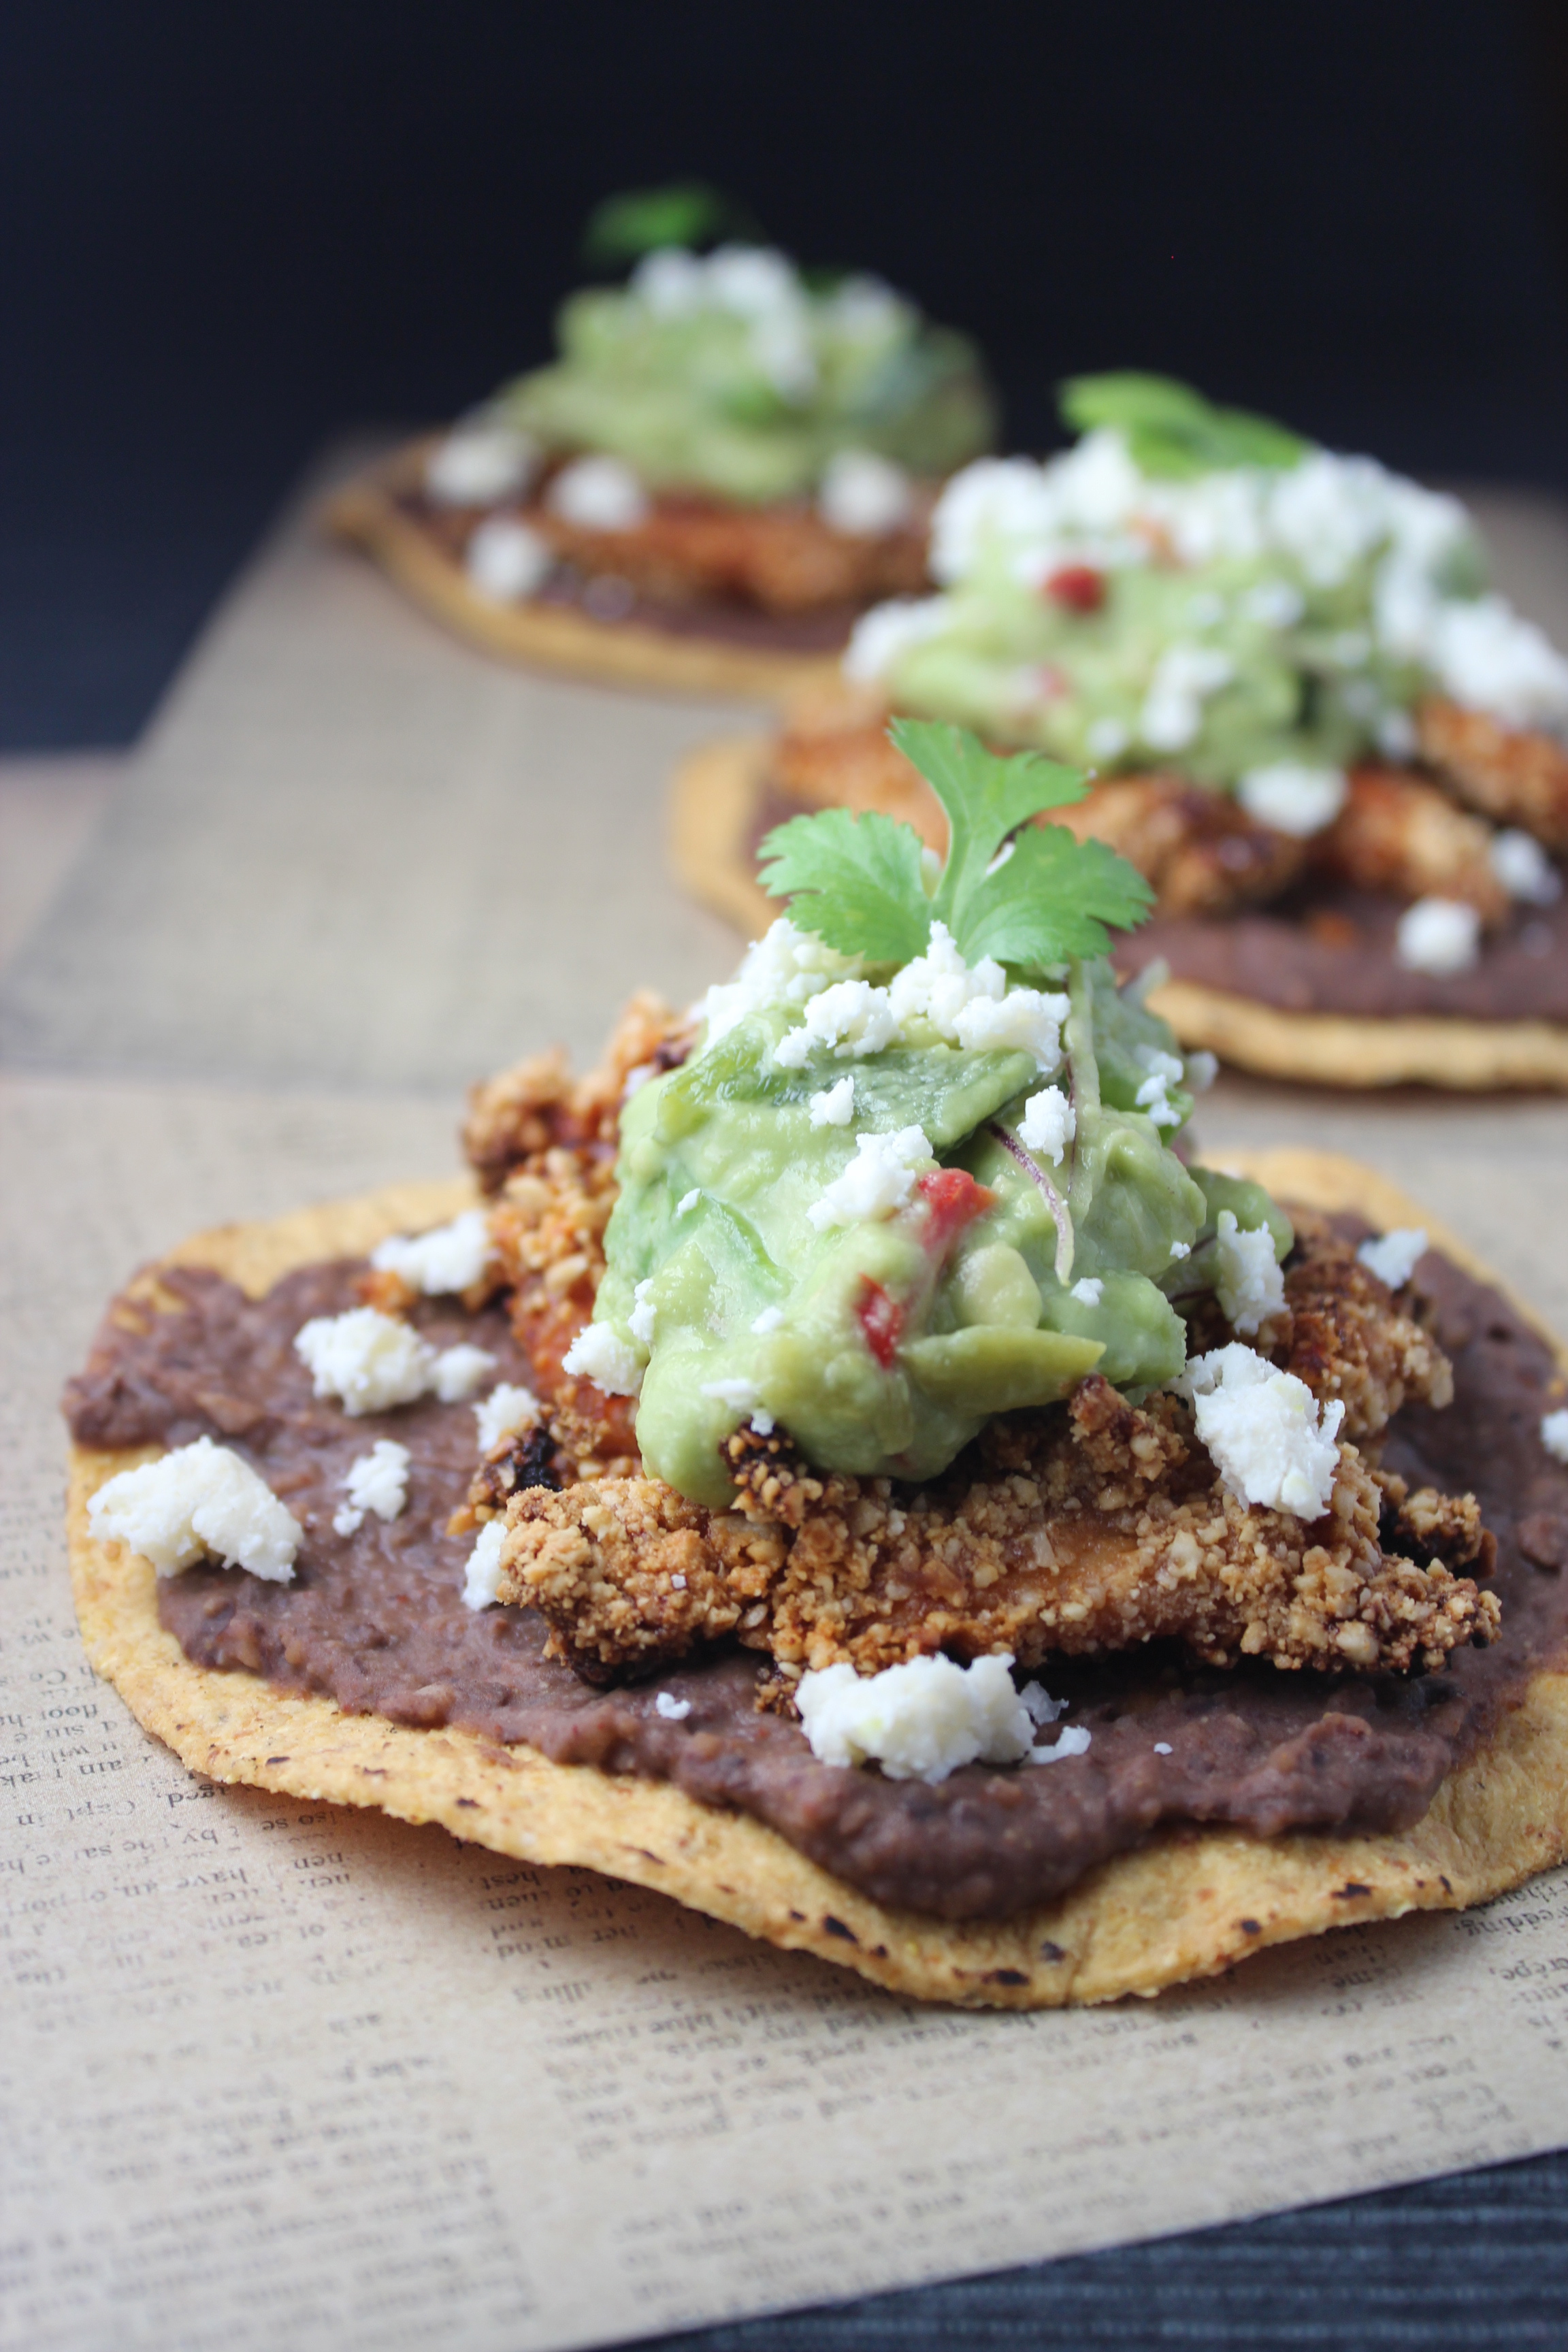 chipotle cashew chicken, crispy chipotle chicken strips, nopale guacamole, cactus guacamole, chipotle chicken tostadas, mexican cashew chicken, garlic lime black bean puree, recipes, food, chopped challenge, black bean chicken tostadas